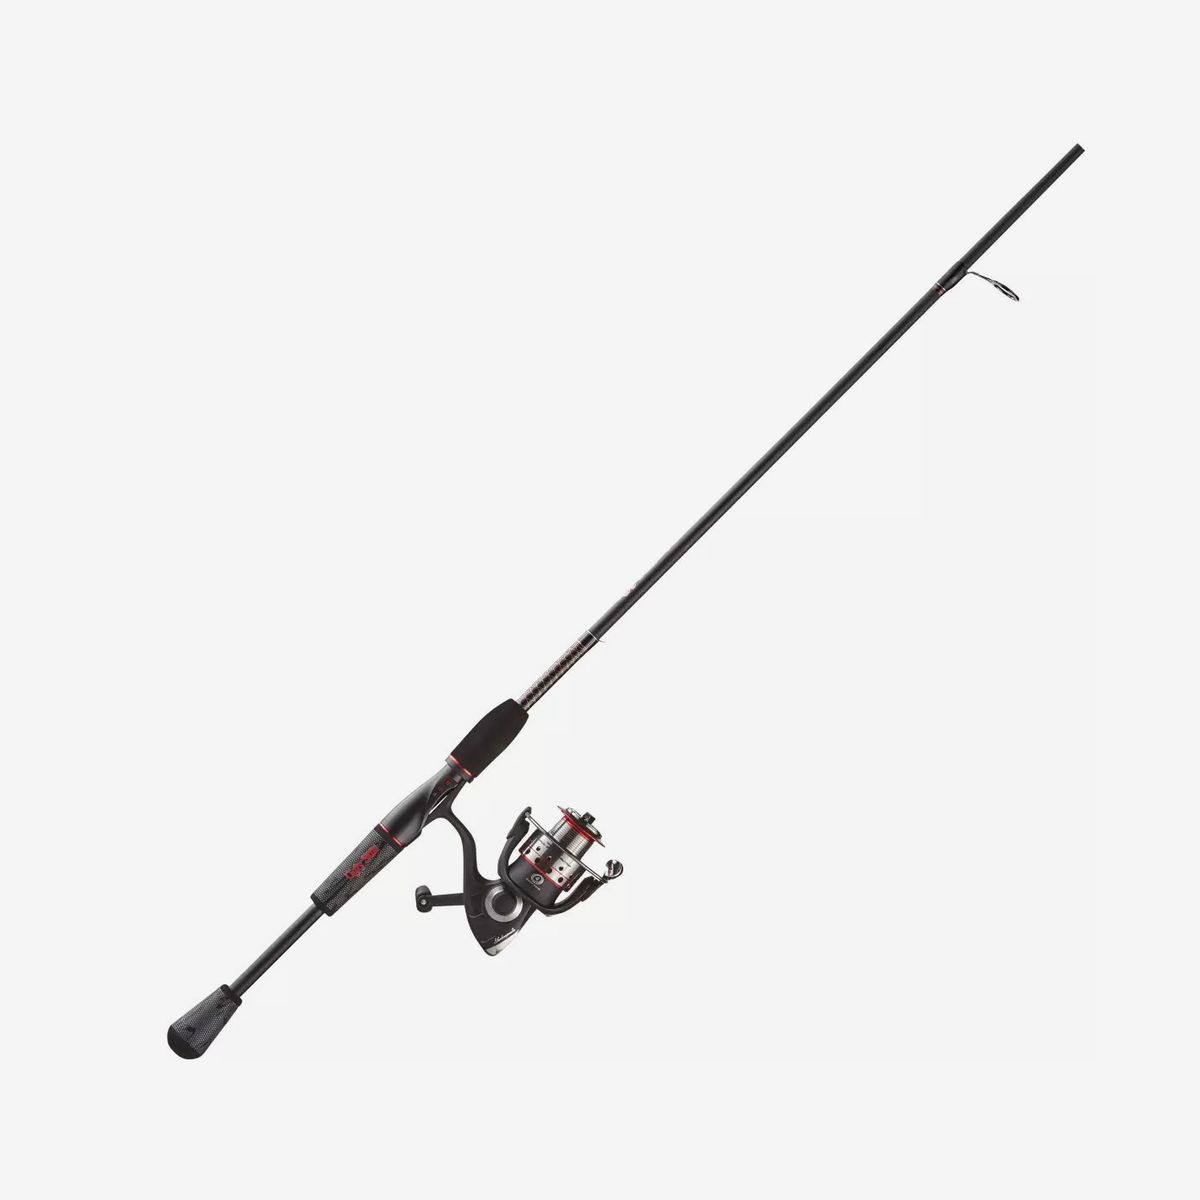 Fish Hit 4 in 1 Pole and Rod